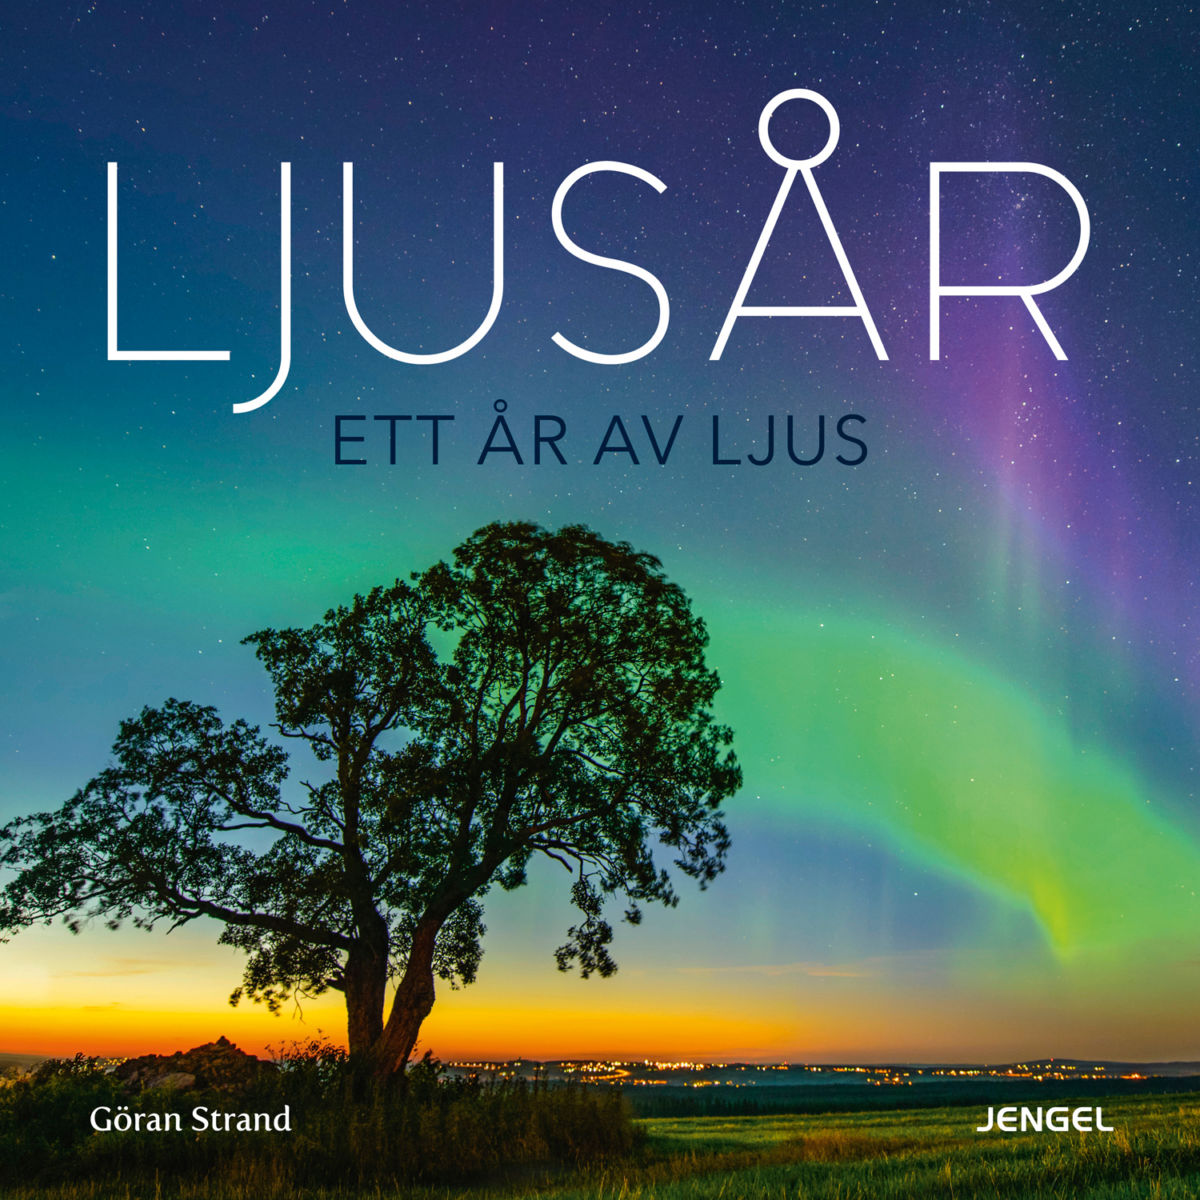 Ljusår – ett år av ljus,  Light-year – a year of light